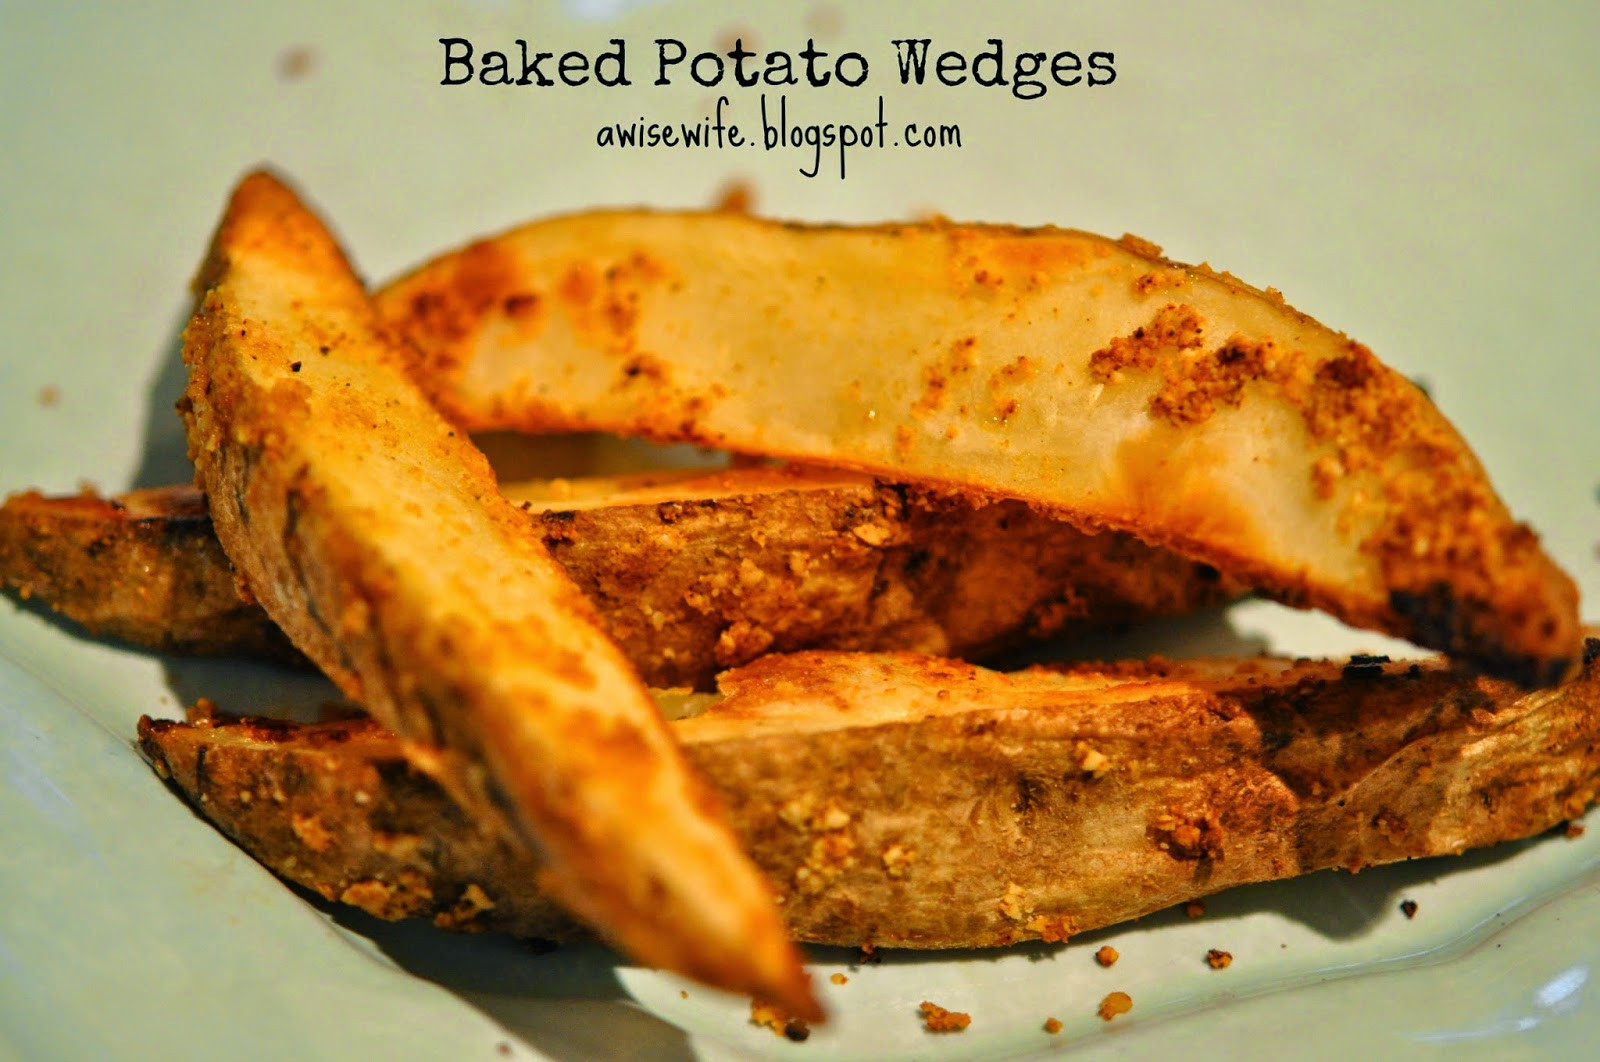 Baking Potato Wedges  Life of a Wise Wife Baked Potato Wedges